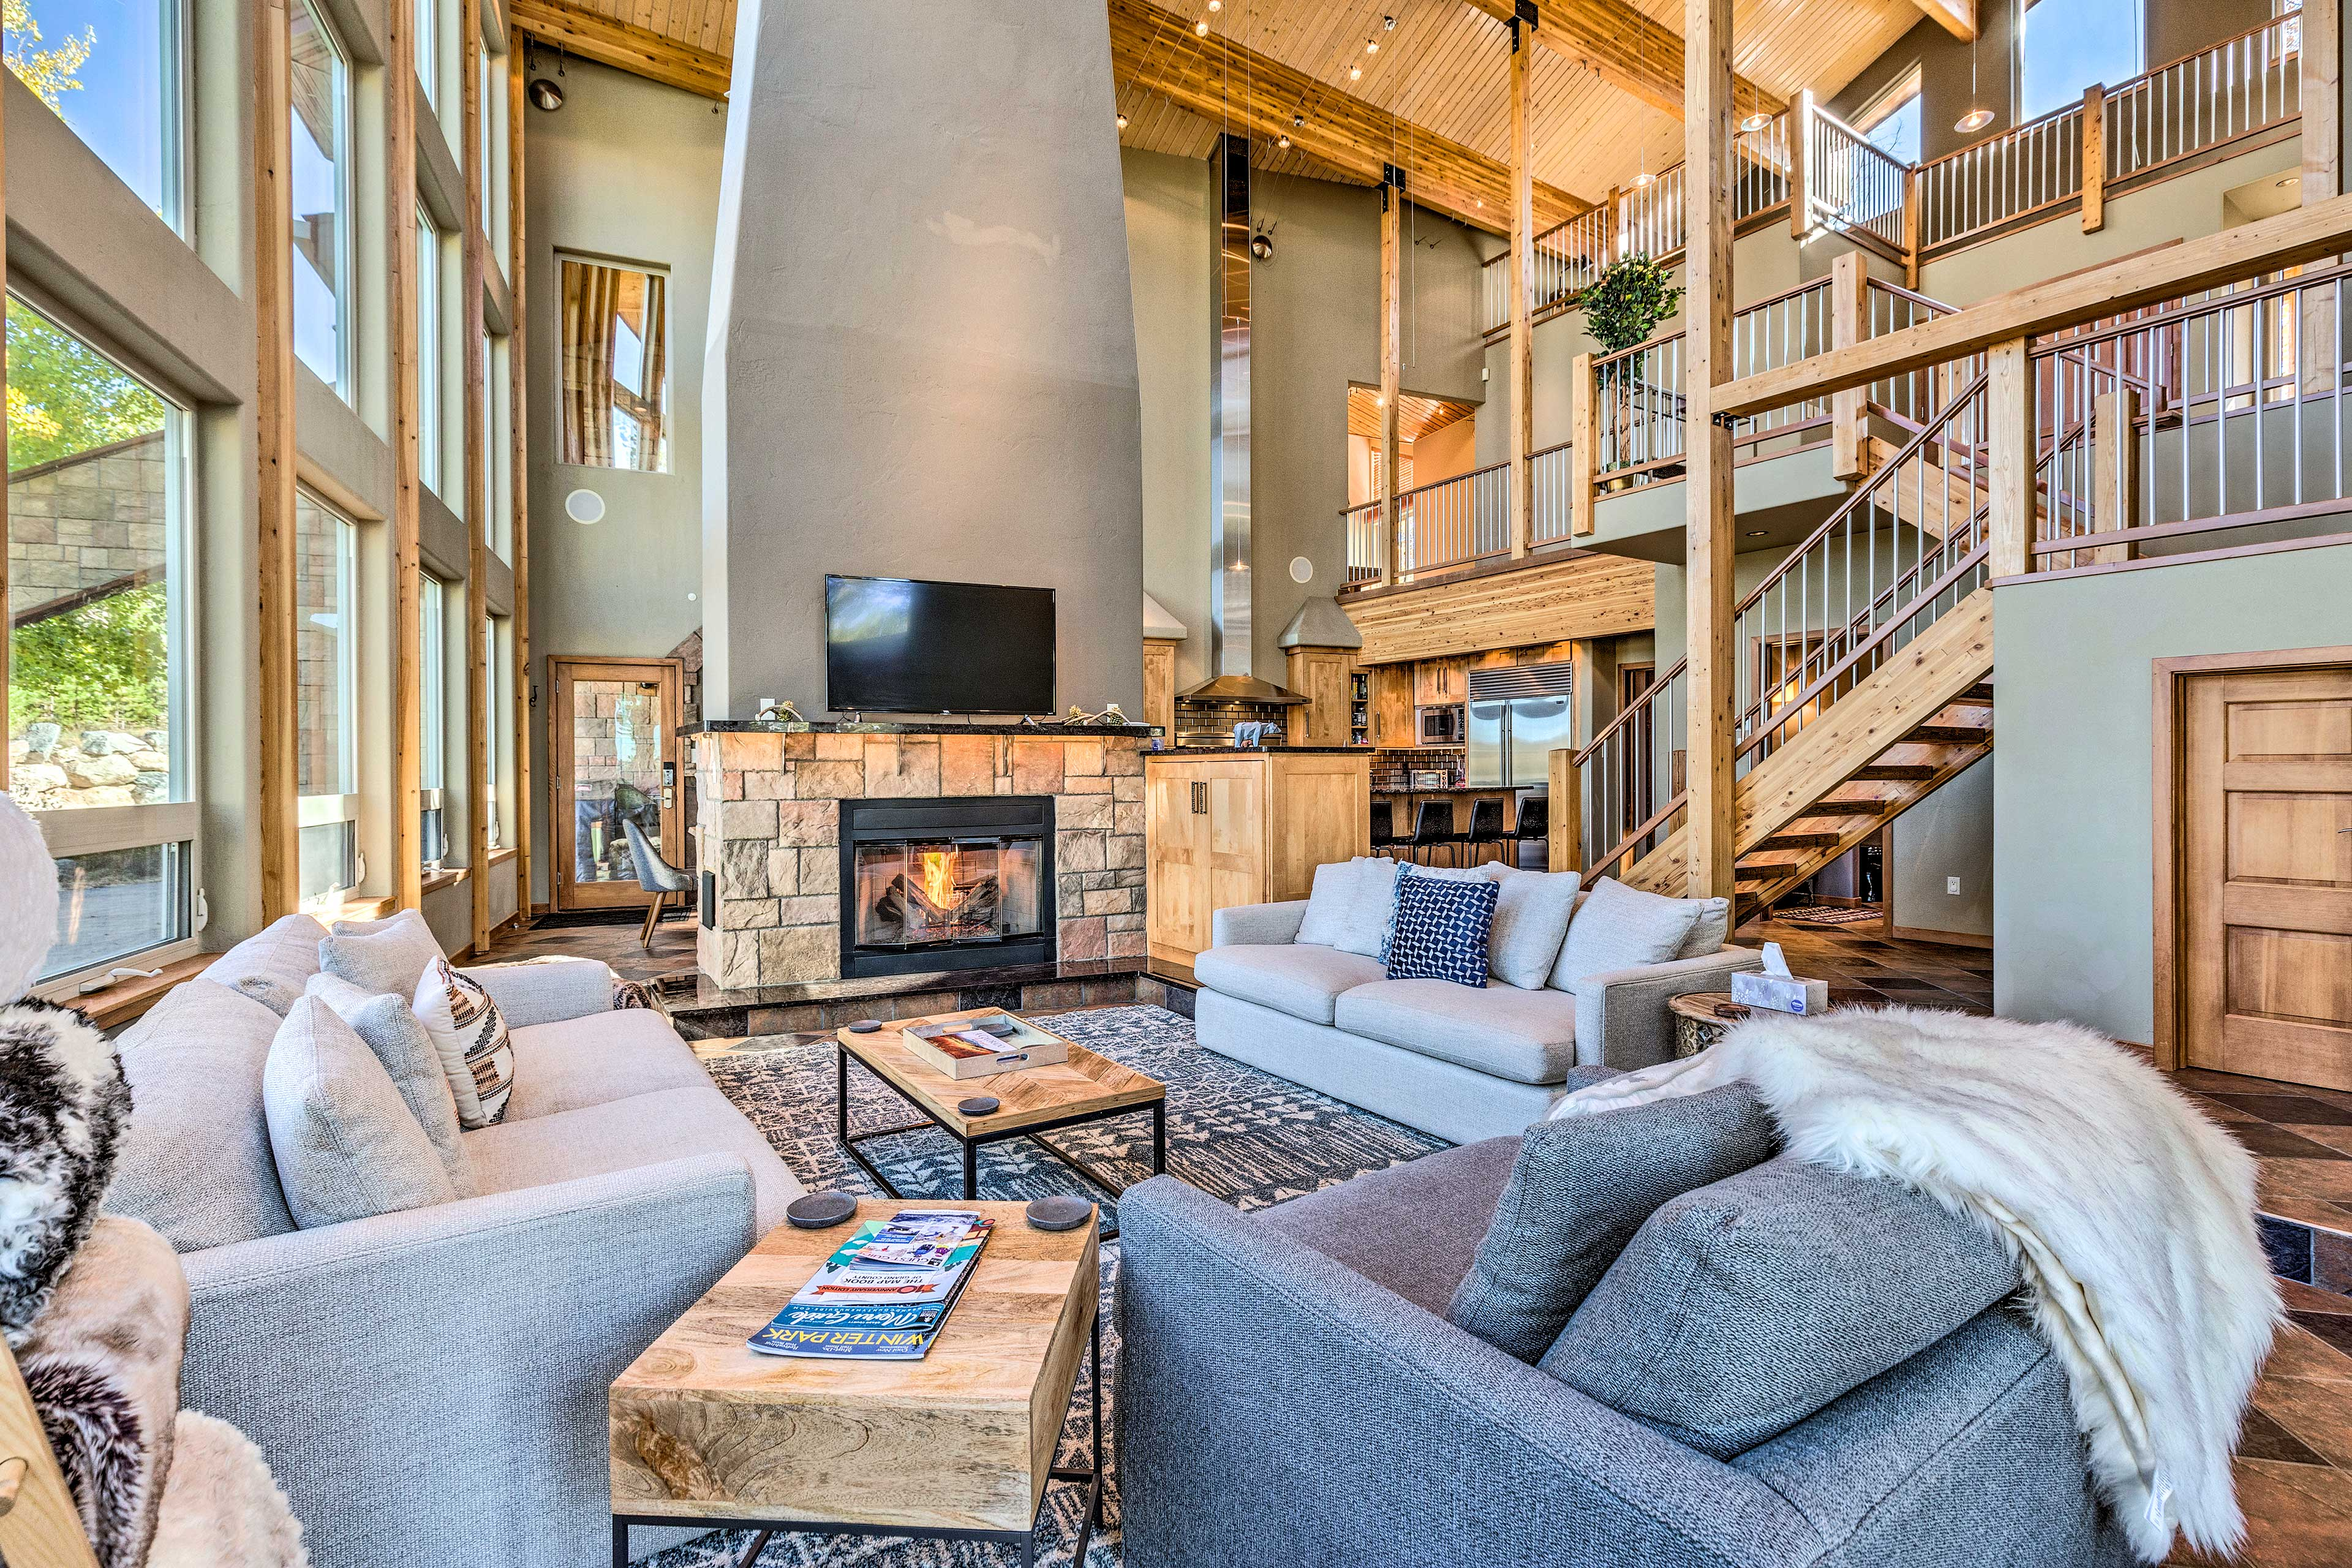 Experience a one-of-a-kind trip to this amazing vacation rental house!